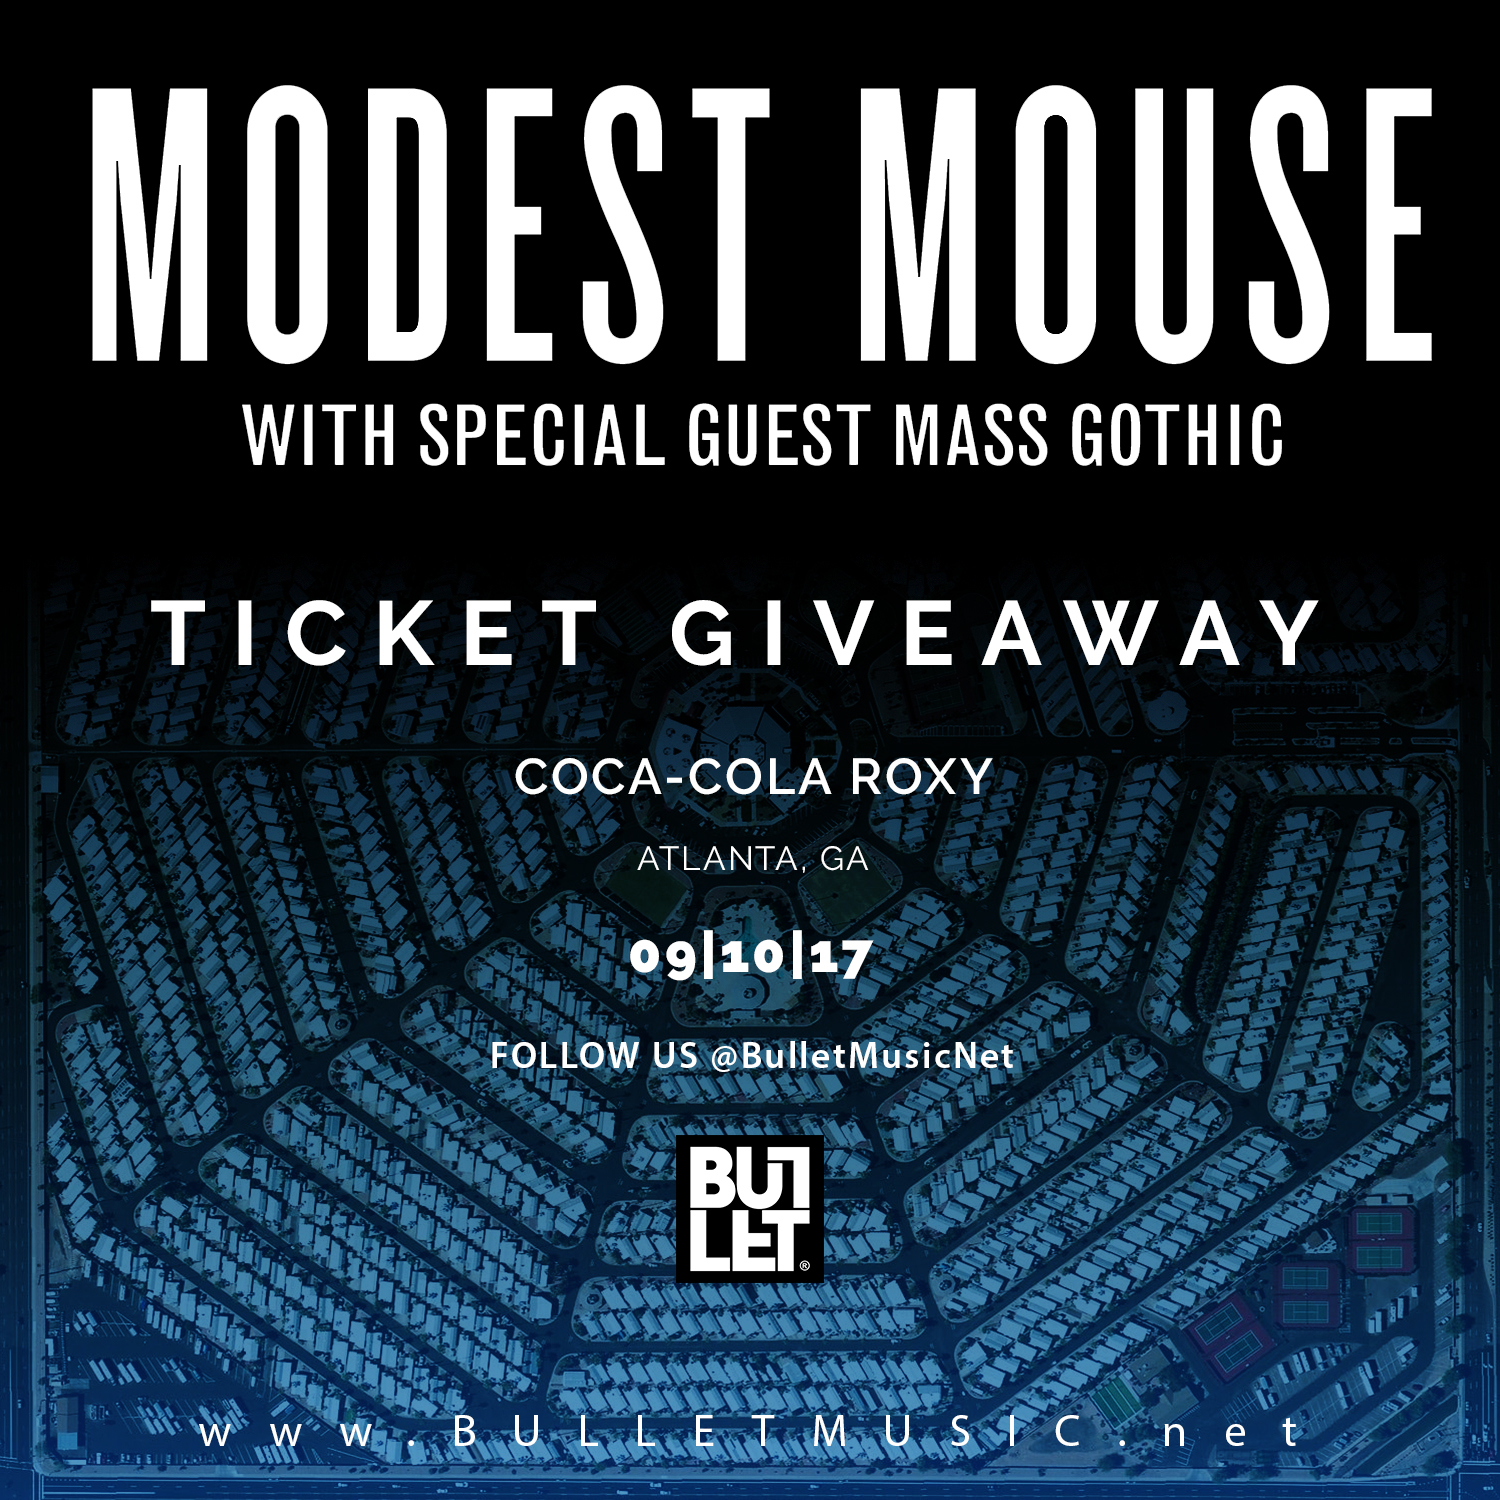 TicketGiveaway-Modest-Mouse-Ver.2.jpg